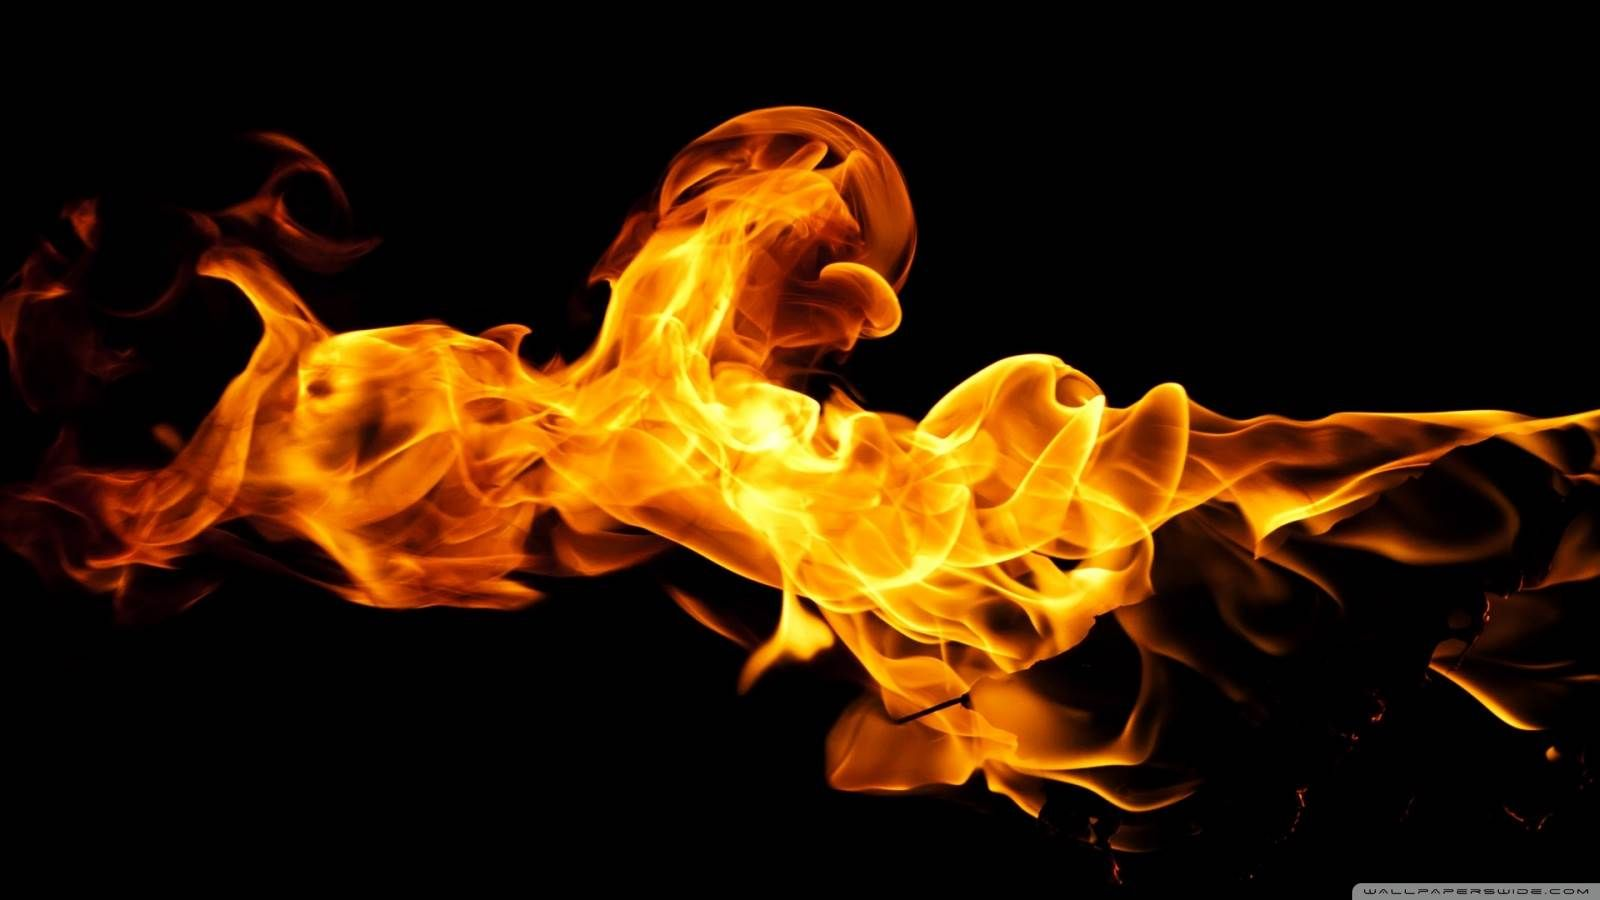 Fire Wallpaper Android Apps On Google Play 1600 900 Wallpaper Fire Adorable Desktop Wallpapers Backgrounds Green Screen Video Backgrounds Hd Cool Wallpapers